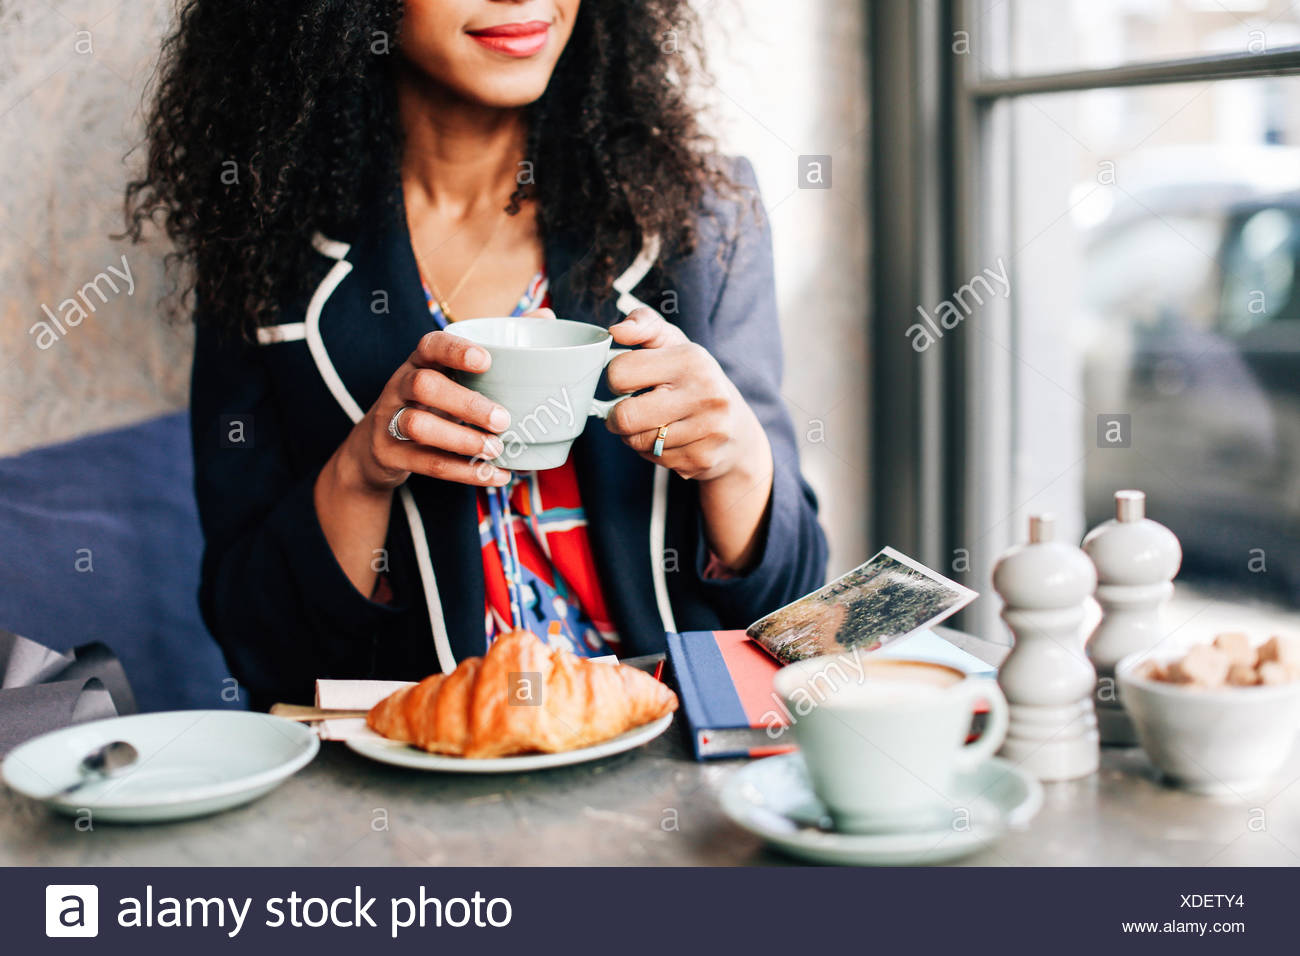 Cropped shot of woman holding coffee cup in cafe - Stock Image